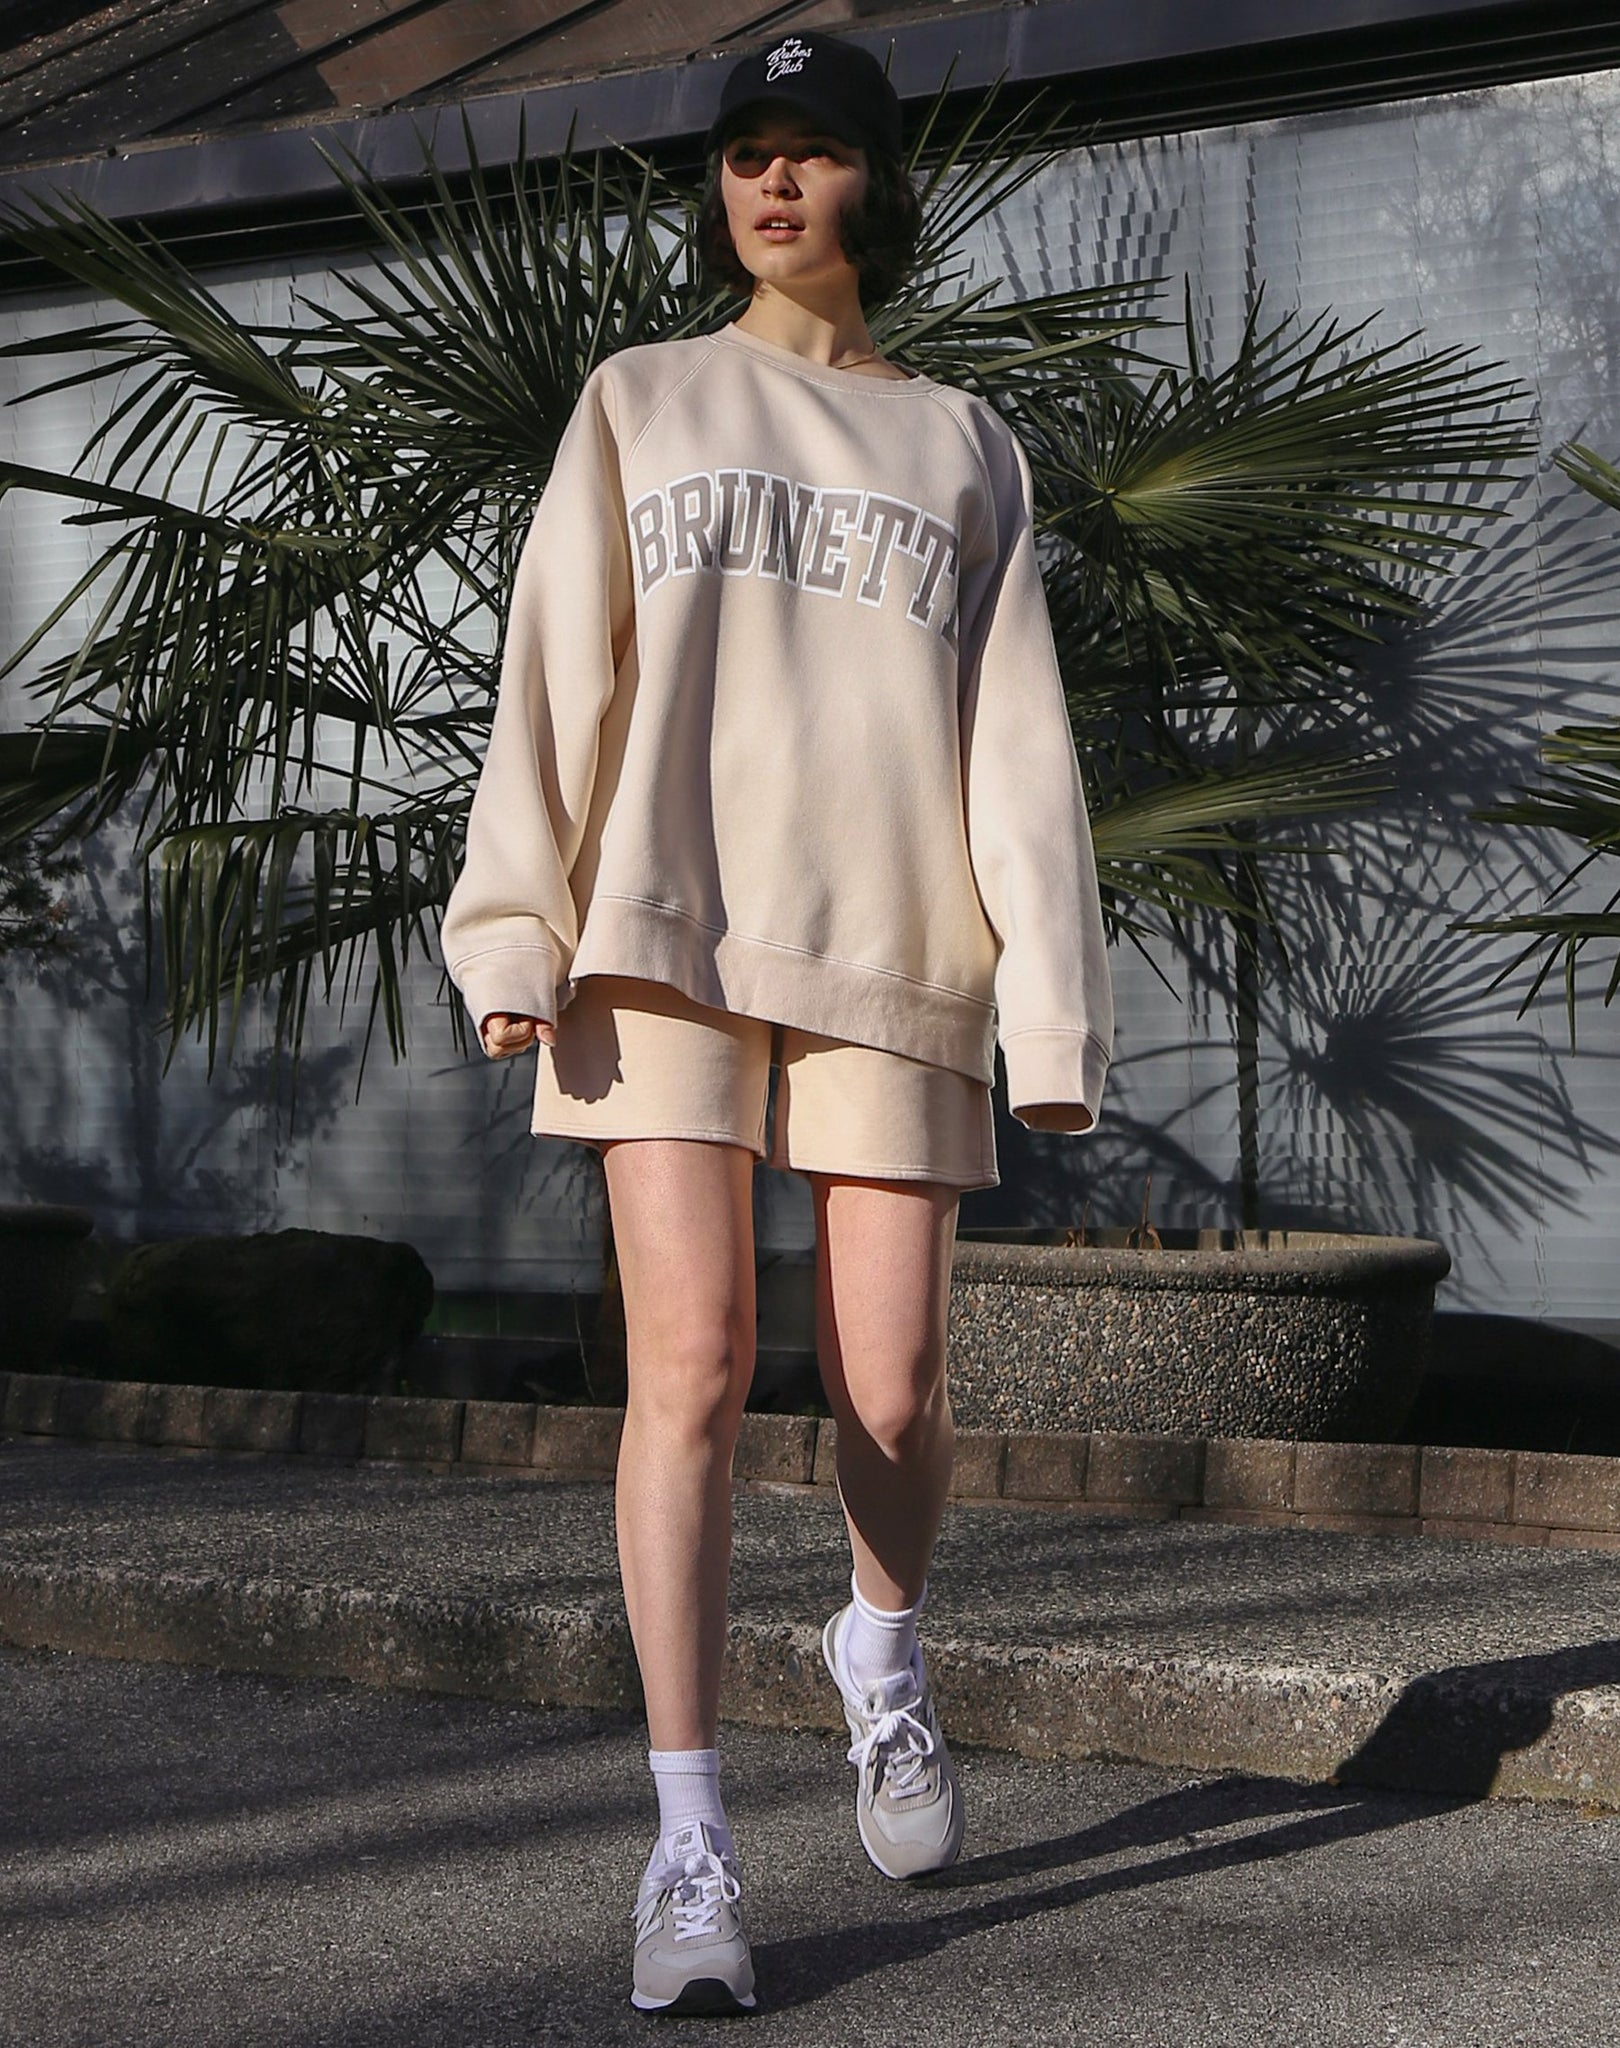 Brunette - Not Your Boyfriend's Crew Neck Sweatshirt